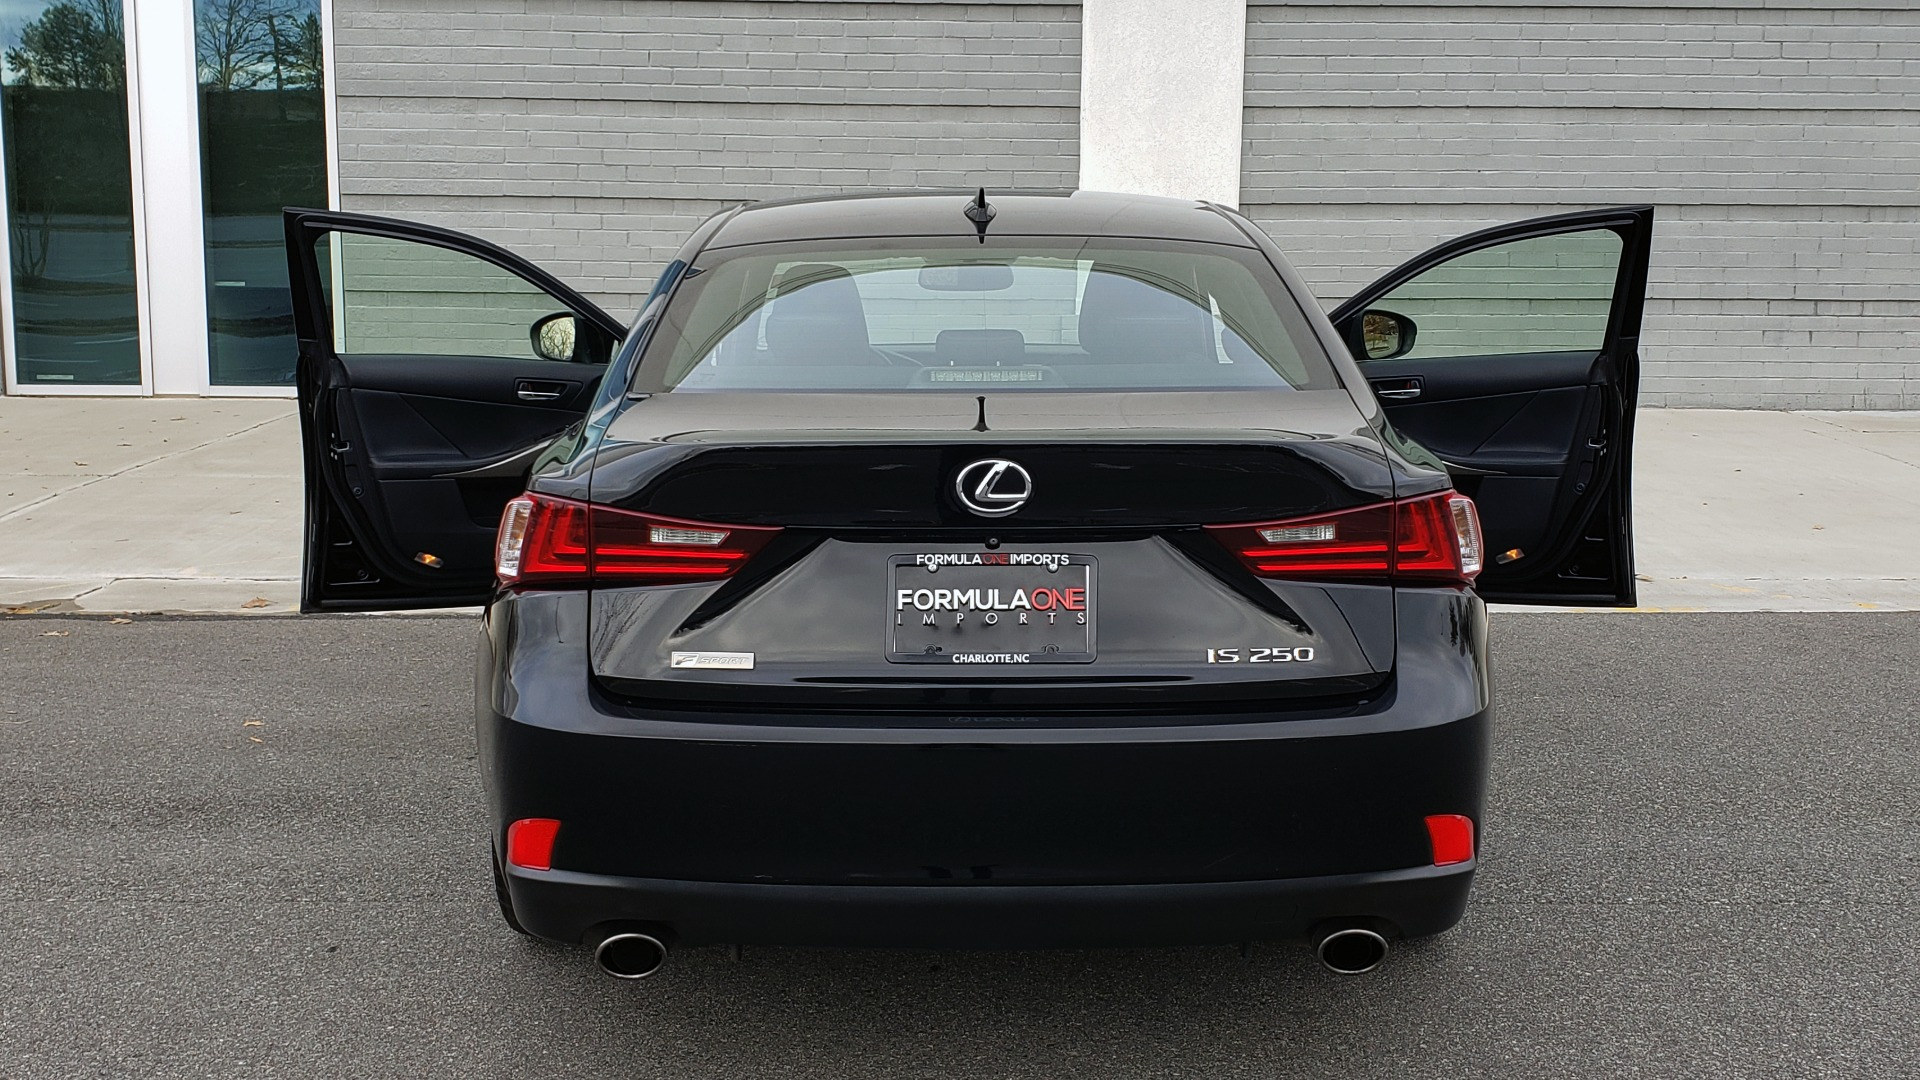 Used 2015 Lexus IS 250 F-SPORT / BLIND SPOT MON / SUNROOF / REARVIEW for sale Sold at Formula Imports in Charlotte NC 28227 25